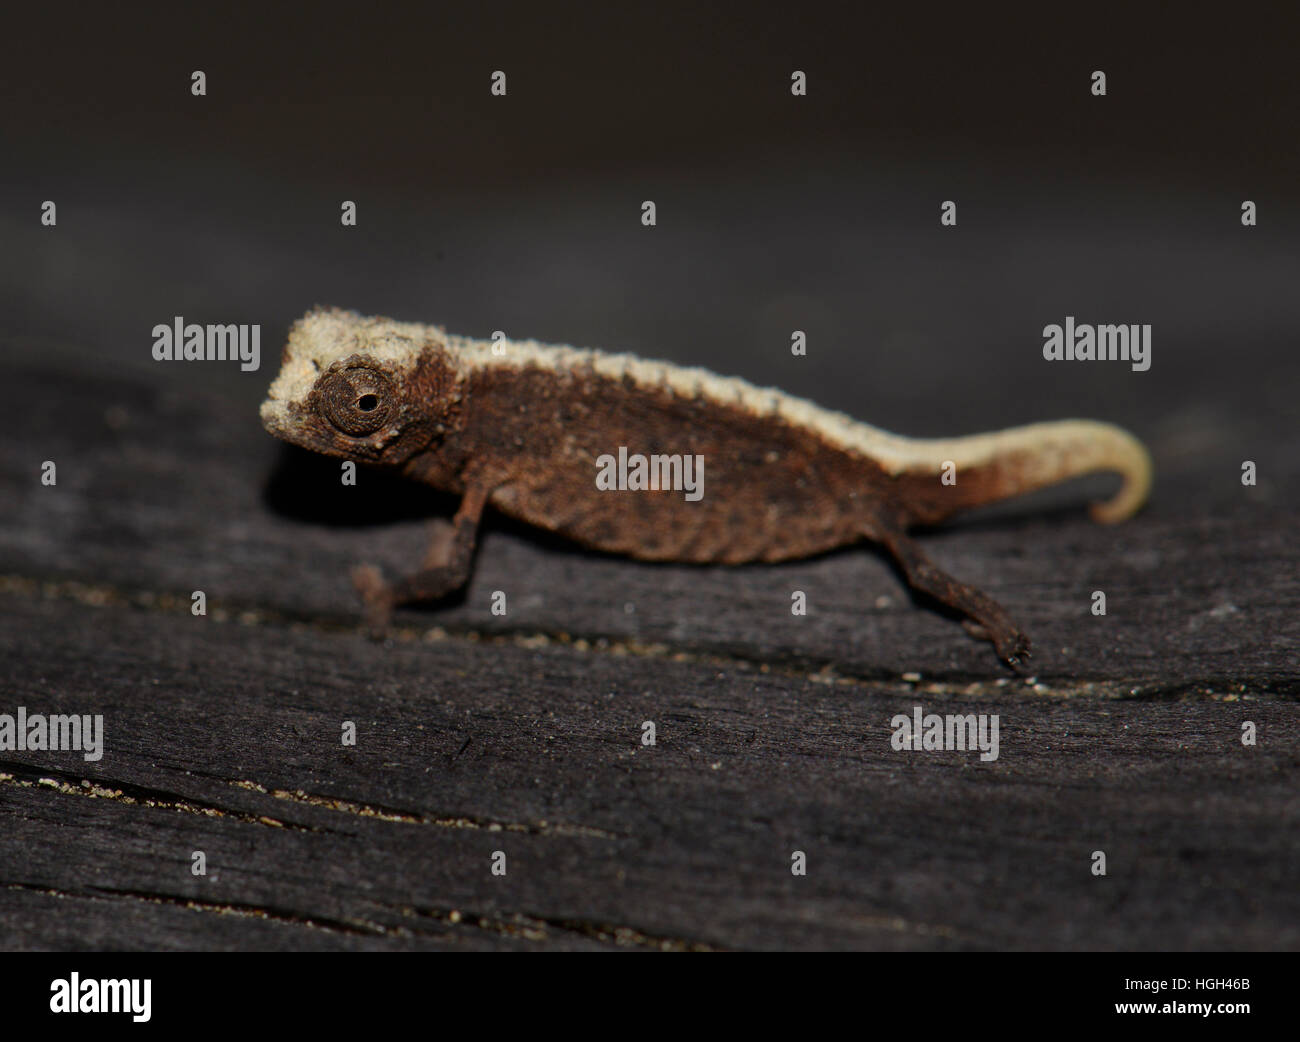 Male dwarf chameleon (Brookesia micra), one of the smallest reptiles in the world, Nosy Hara National Park, Madagascar - Stock Image